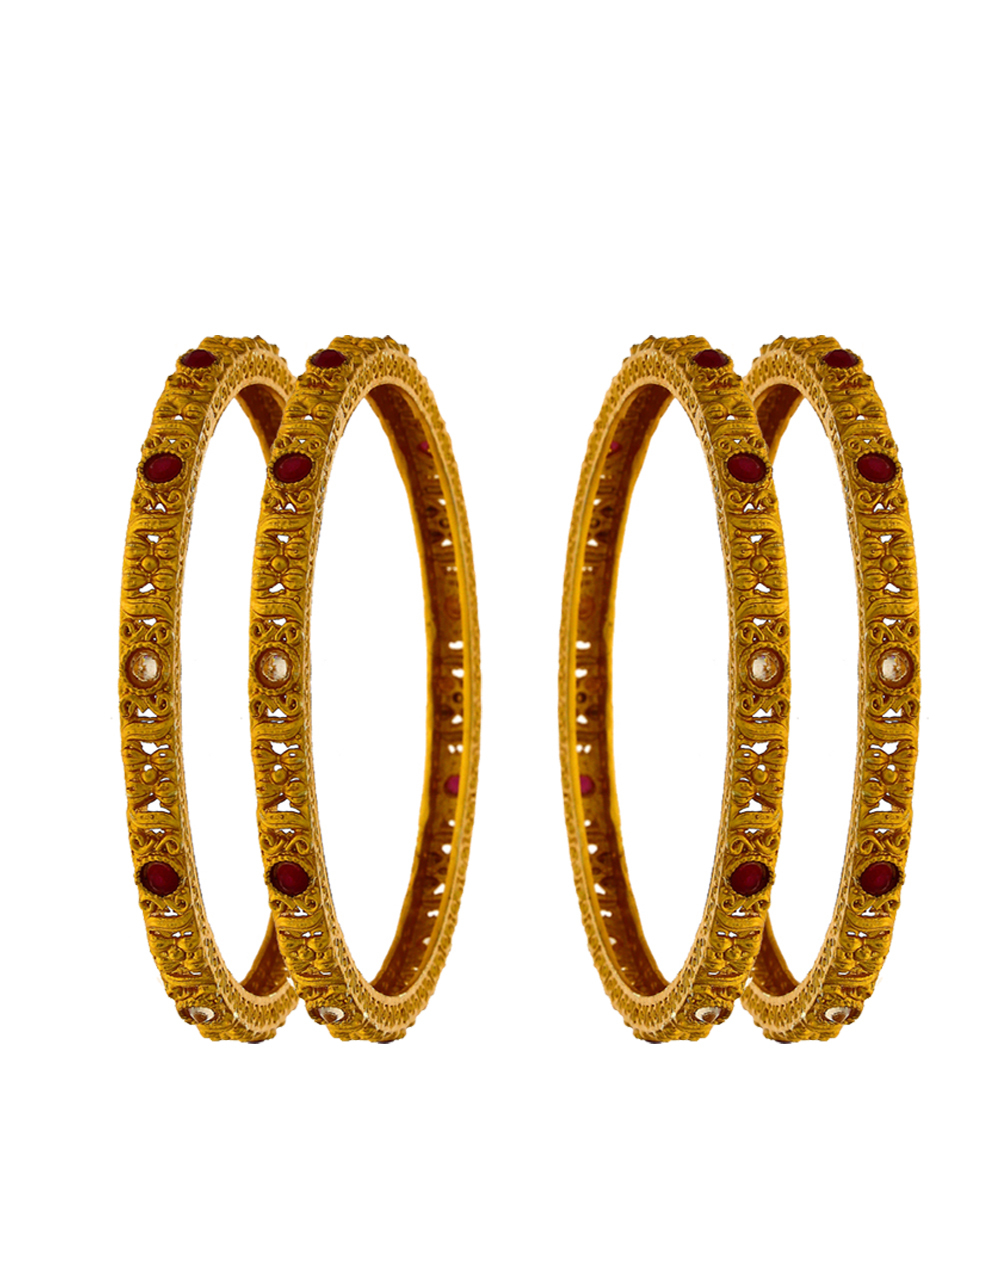 Classy designer bangles decked in a round shape red colour stone for women